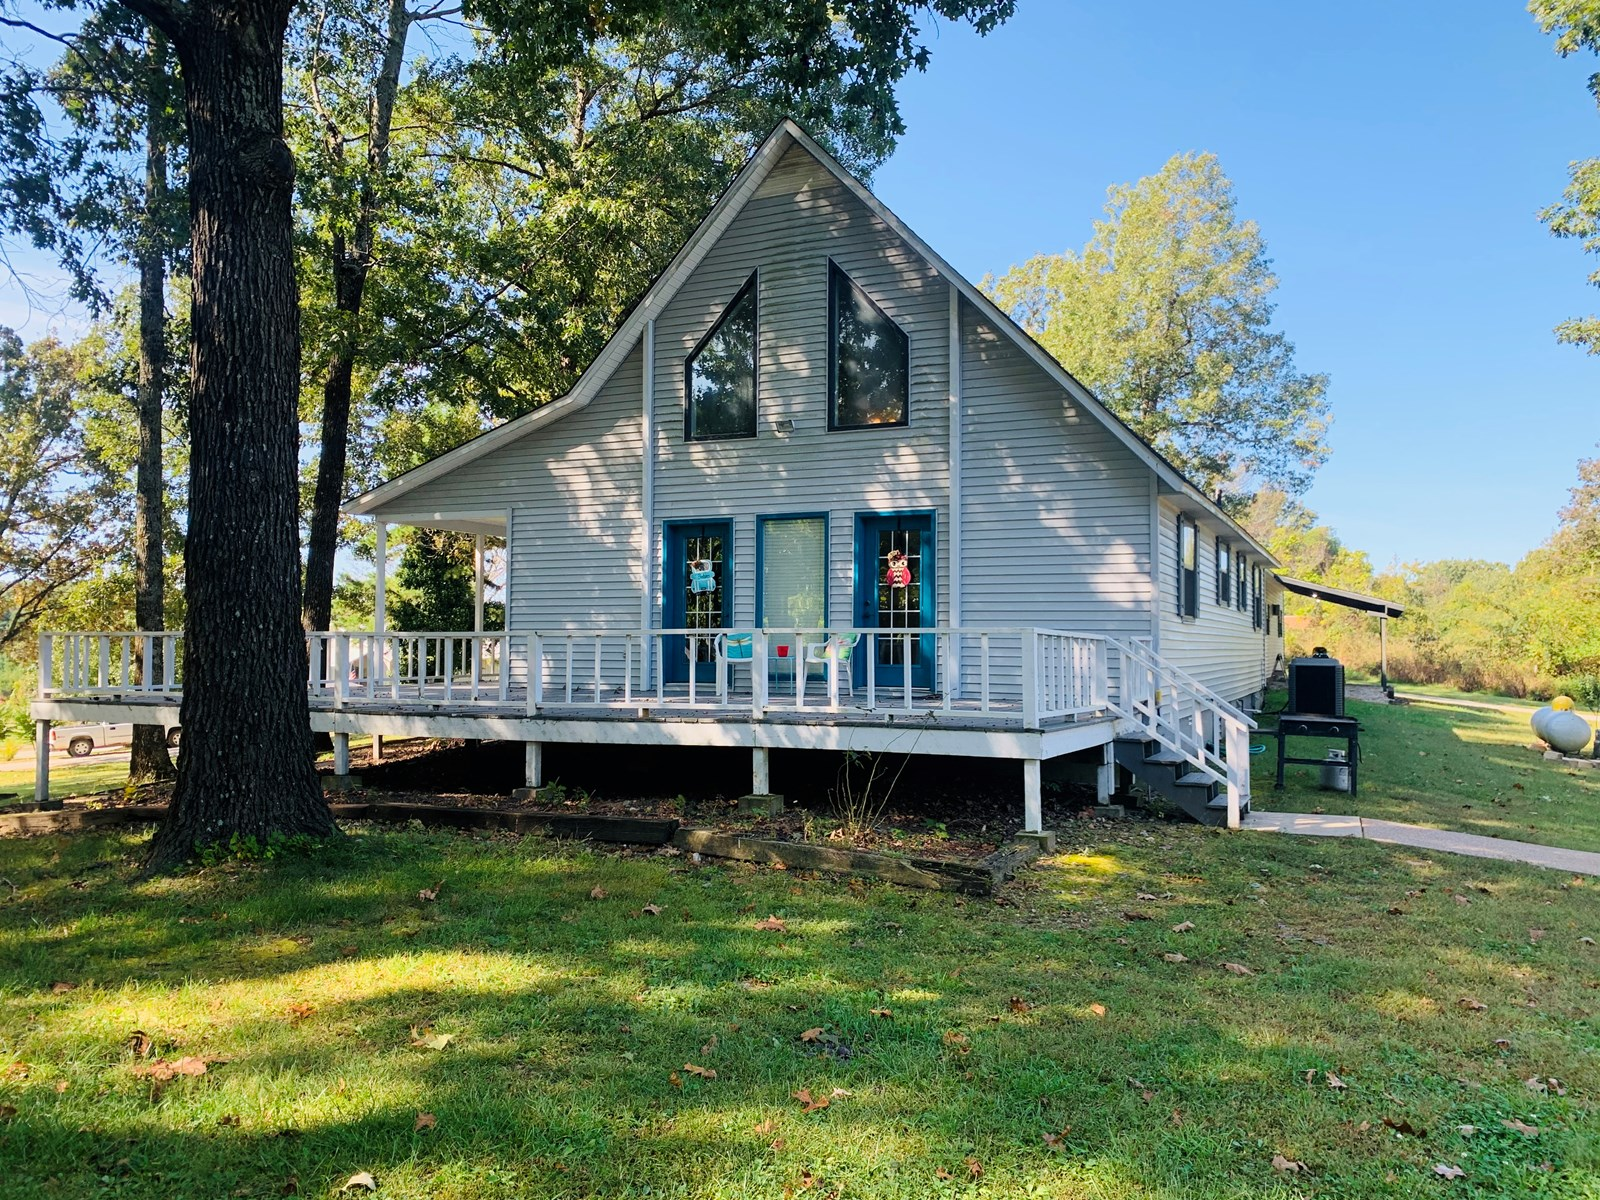 FAMILY HOME WITH POOL HOUSE AND SHOP WITH ACREAGE FOR SALE